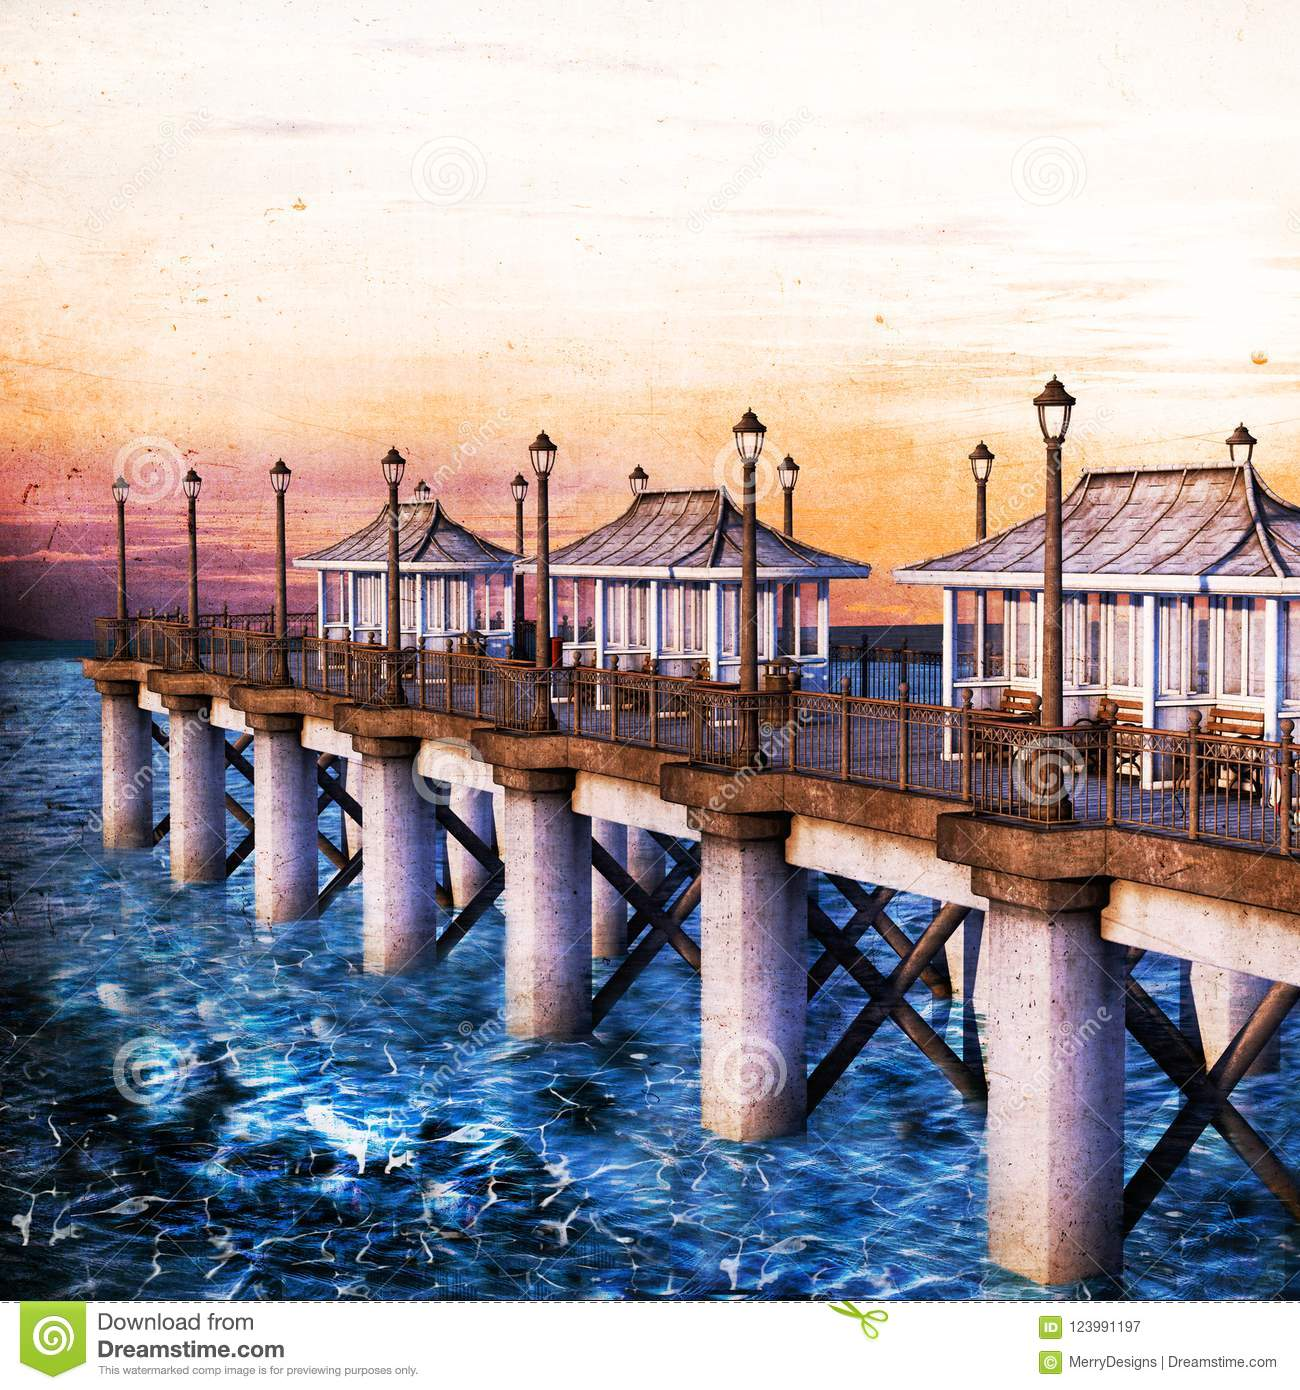 Vintage Style Illustration of a Pier for backgrounds